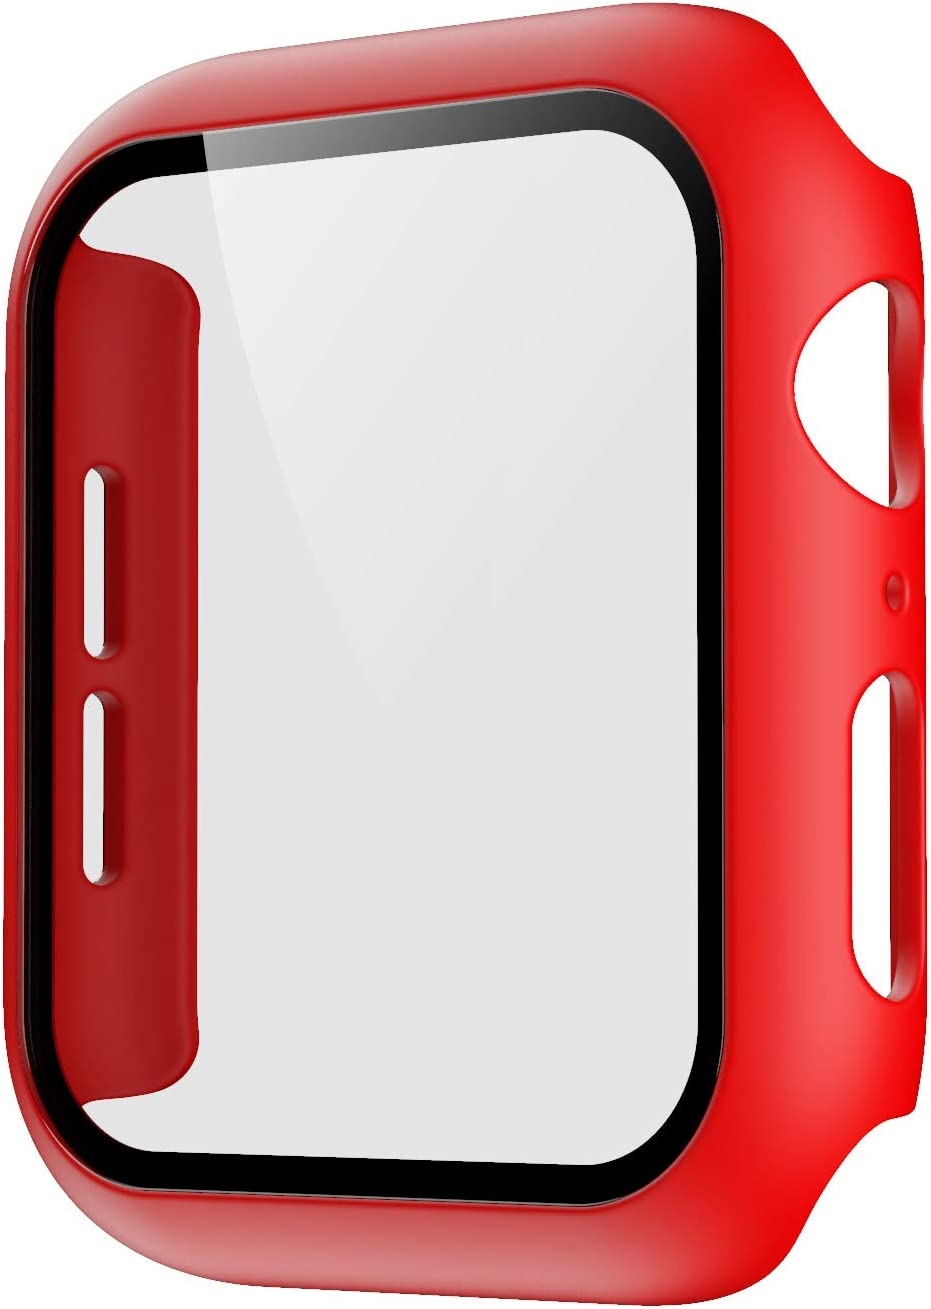 Pokanic Compatible with Apple Watch SE 6 5 4 3 2 1 Series iWatch 9H Tempered Glass Case Full Body Screen Protector Cover Wireless Charge Light Weight Scratch Resistant Proof (Red, 42mm)